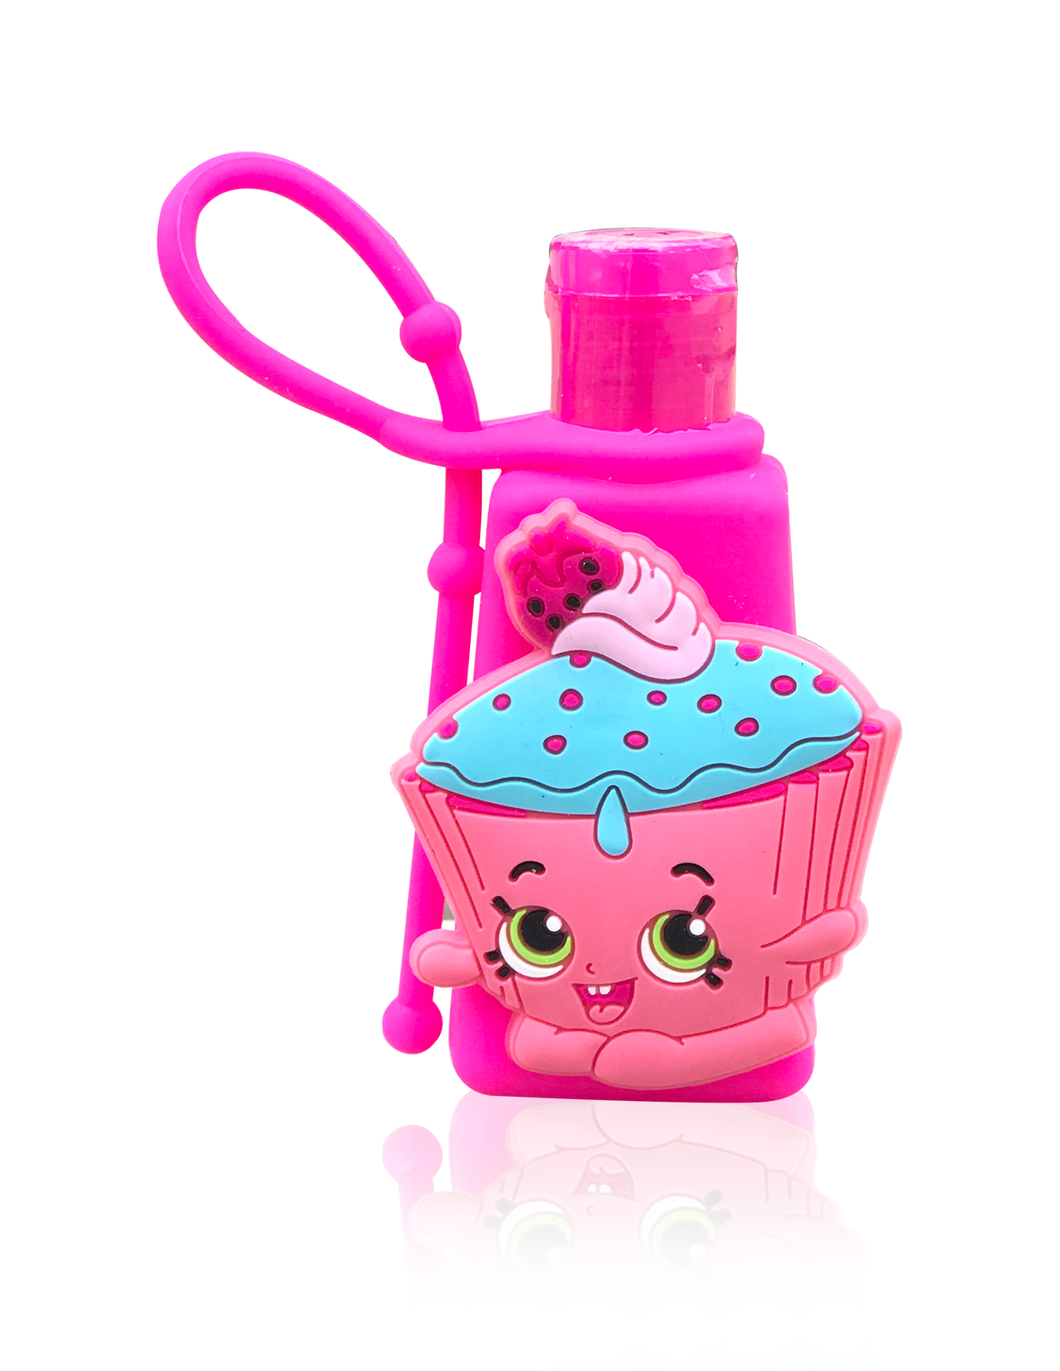 Shopkins Cupcake chic 3D Hand Sanitizer